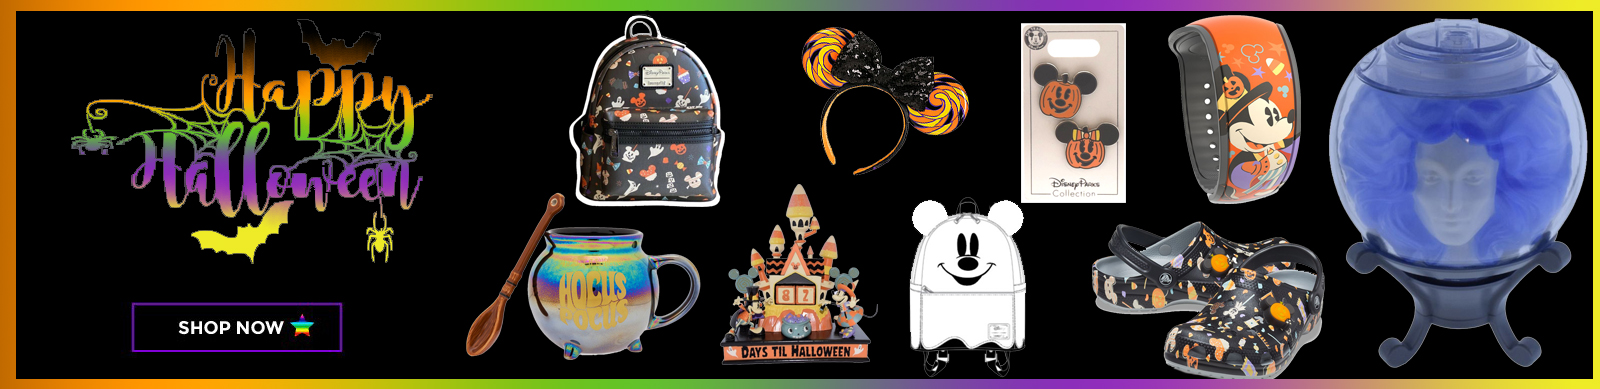 Disney Toys, Collectibles & Souvenirs